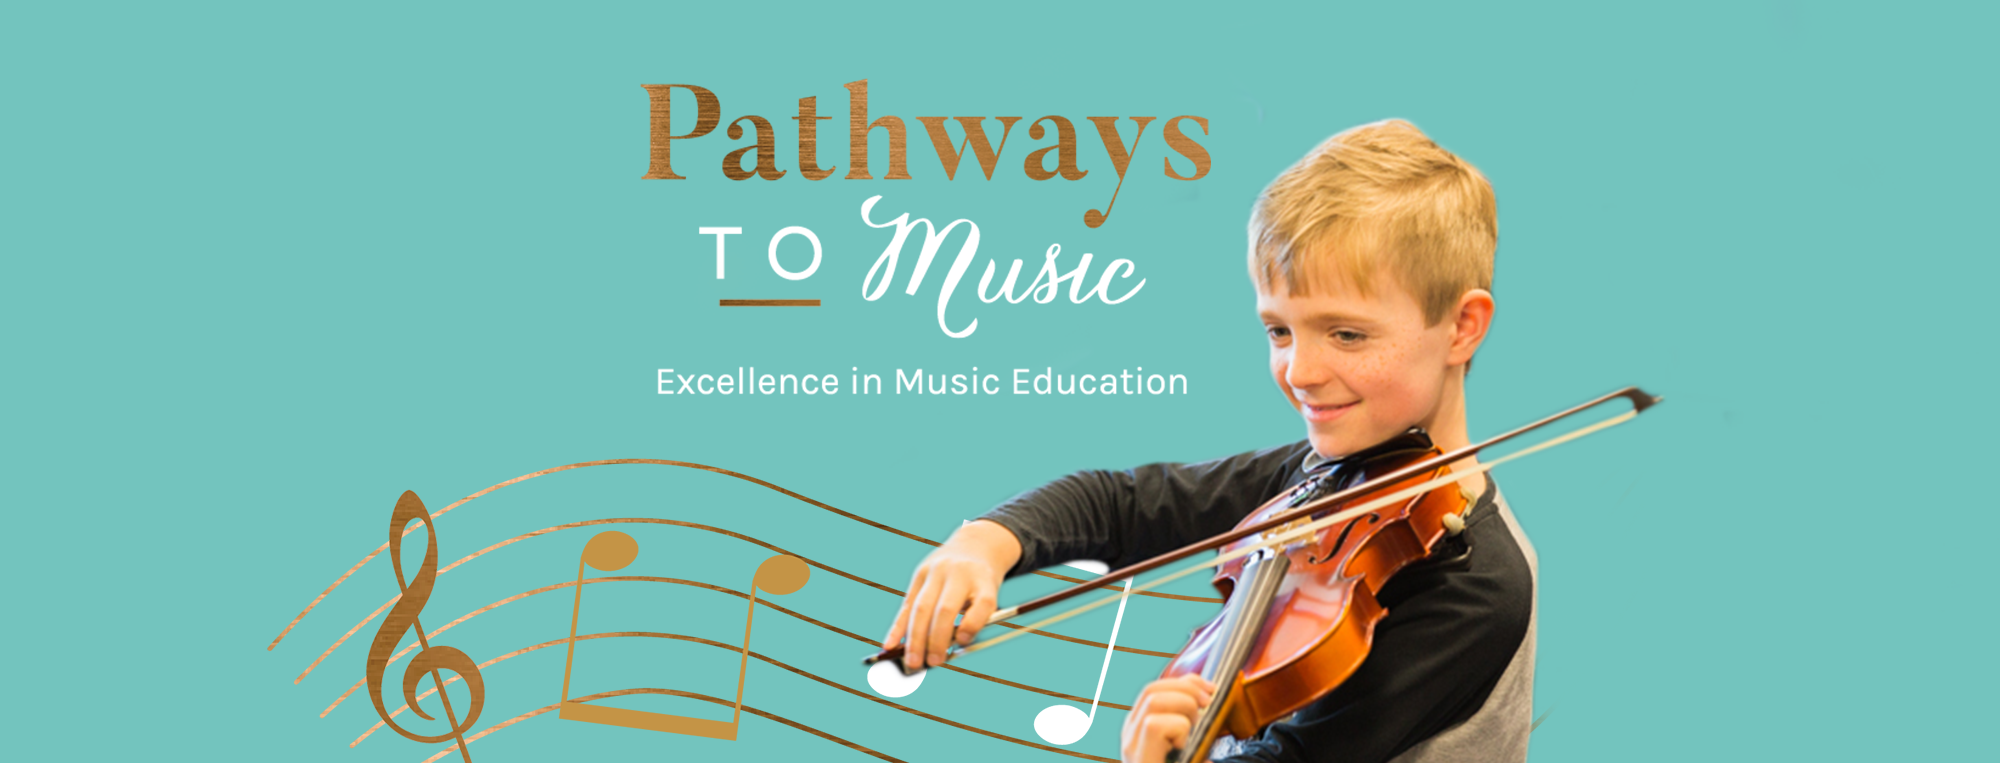 Introducing…Pathways to Music!